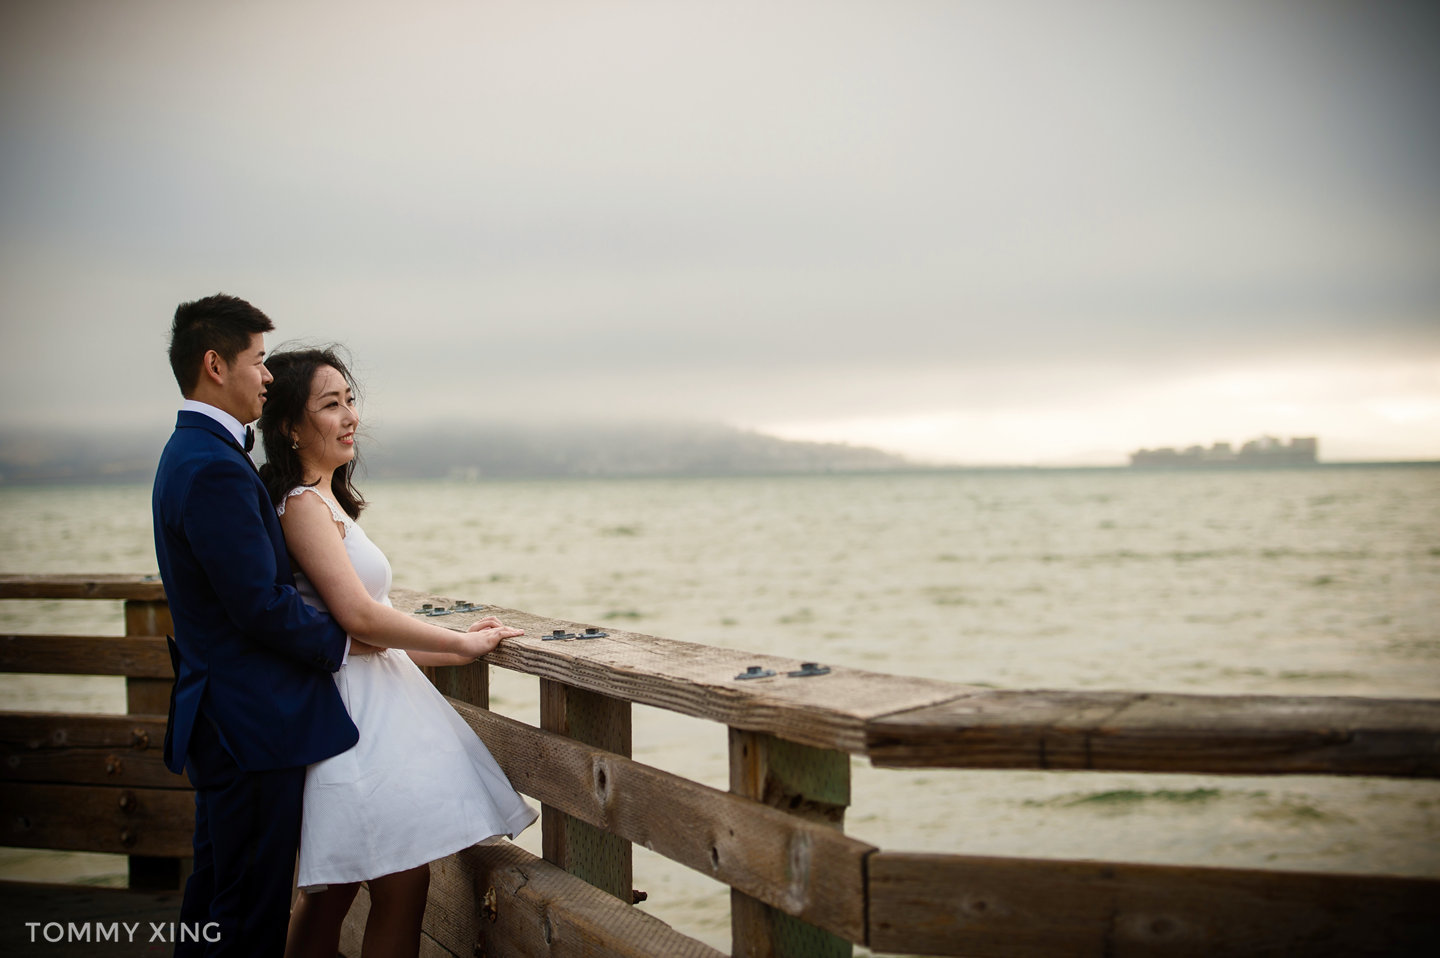 San Francisco Pre Wedding 美国旧金山湾区婚纱照 摄影师Tommy Xing Photography 24.jpg